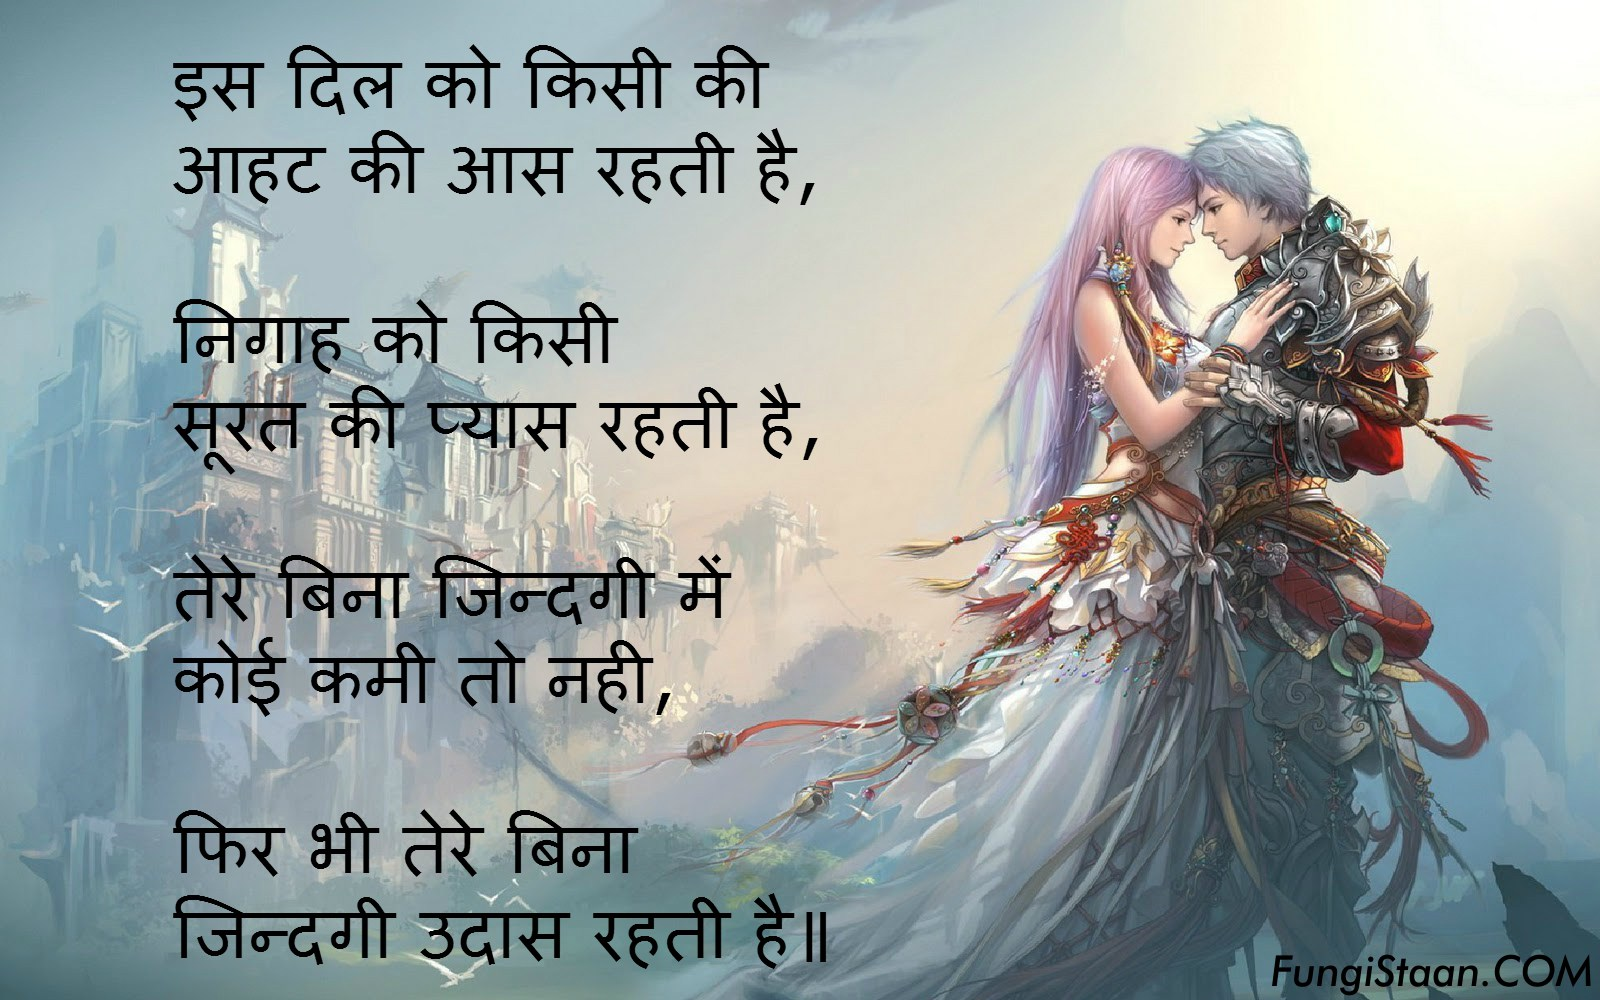 Download Gujarati Love Shayari Wallpaper Gallery